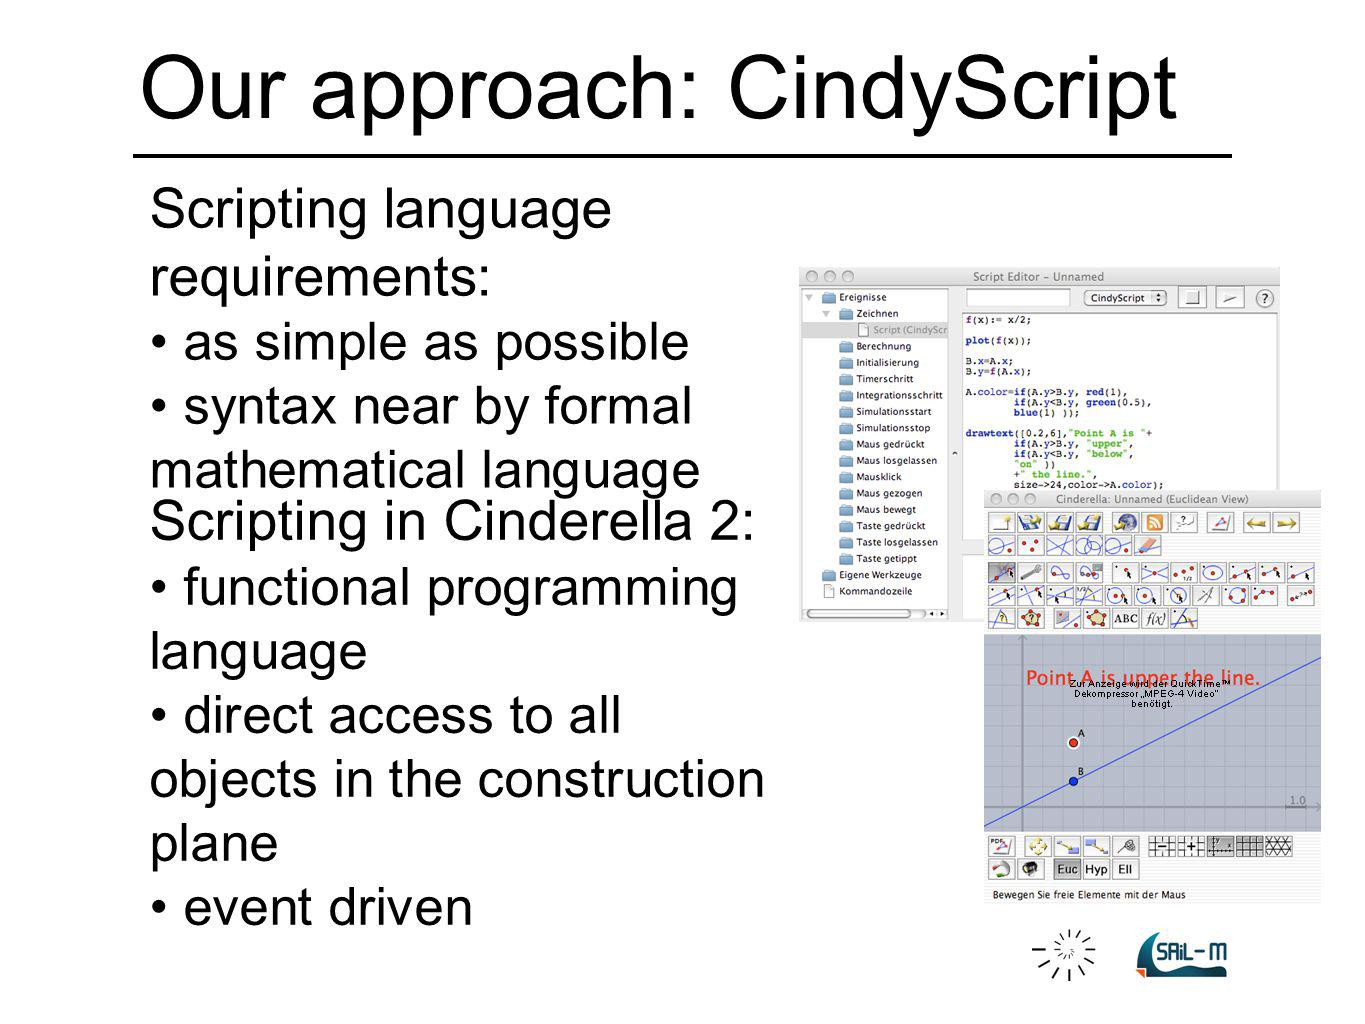 Our approach: CindyScript Scripting language requirements: as simple as possible syntax near by formal mathematical language Scripting in Cinderella 2